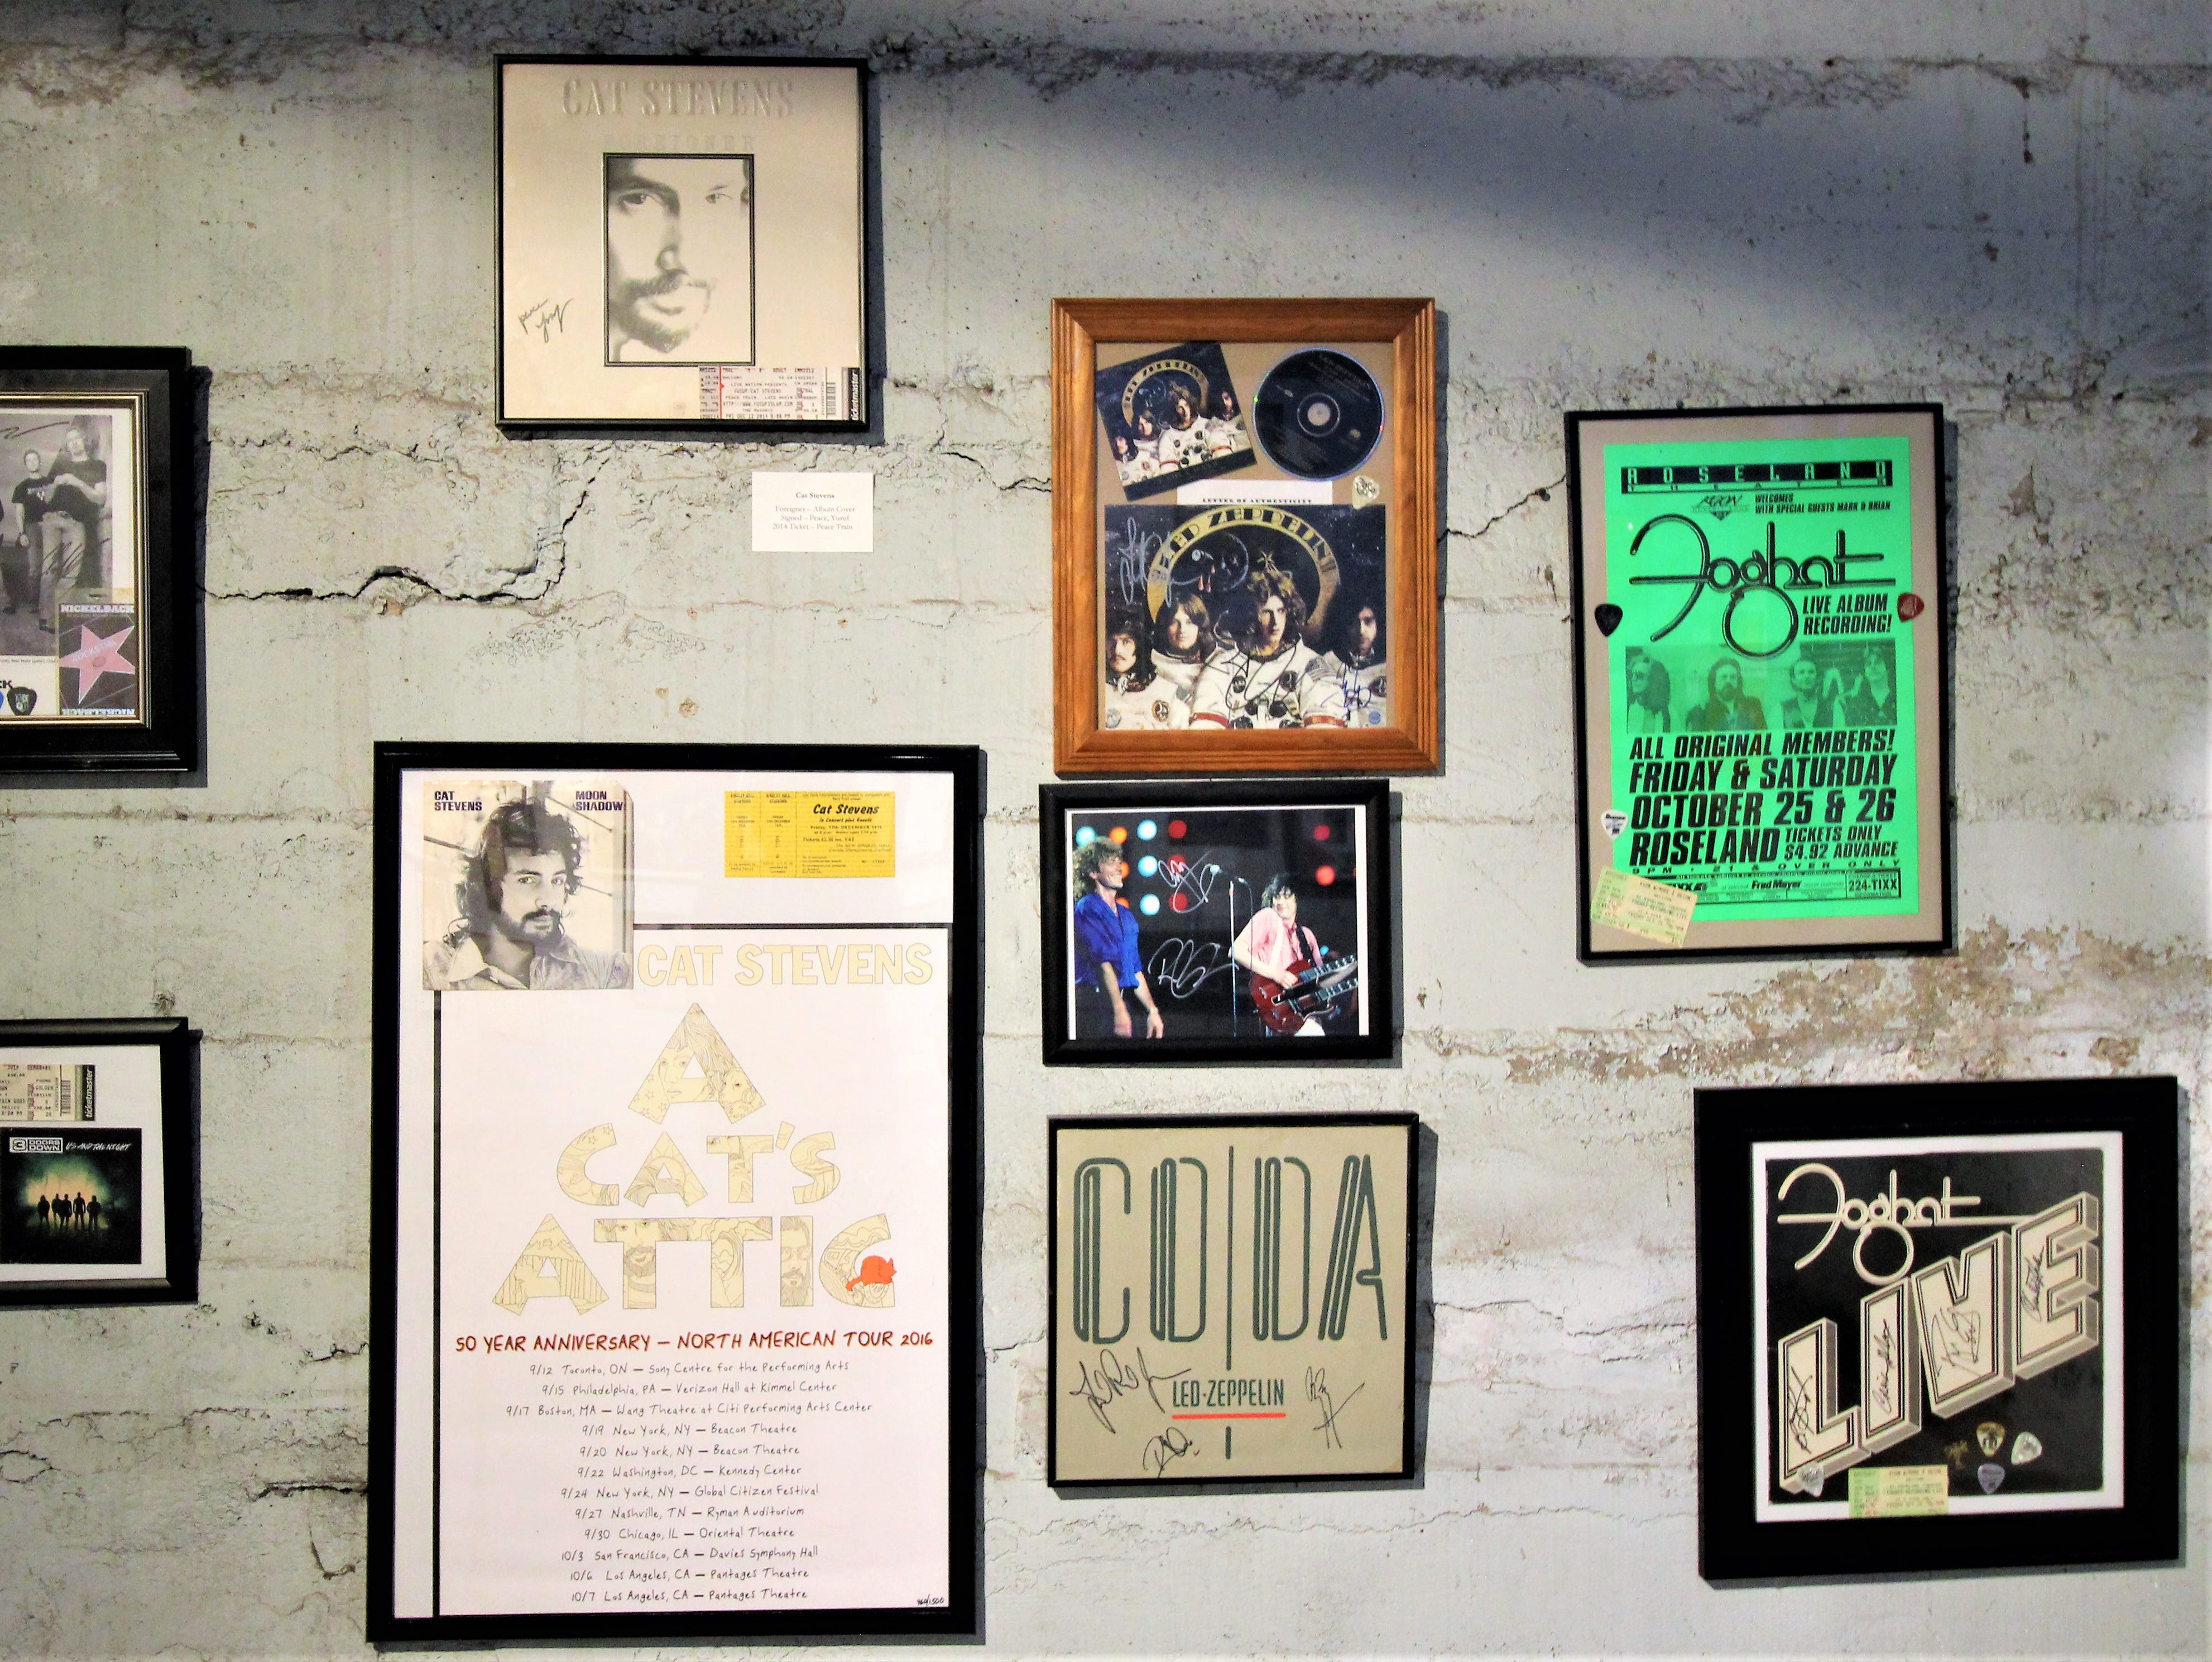 The greats live on forever. Rock and Roll never dies, especially when walls are covered with great pieces of memorabilia generously donated by the owner James Lane.